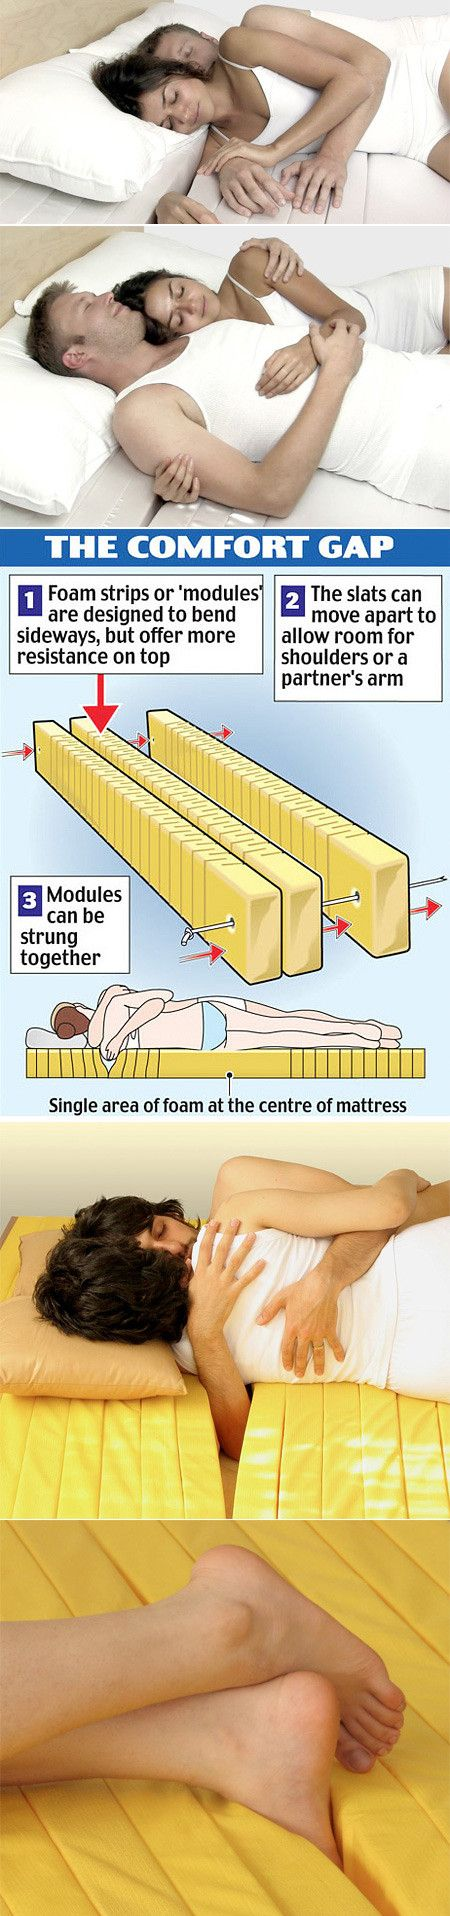 The Cuddle Mattress could strengthen relationships, says its designer, by letting partners remain cuddled together. The three-inch wide slats part easily from one another, leaving room to slide an arm beneath a partner and leave it there.